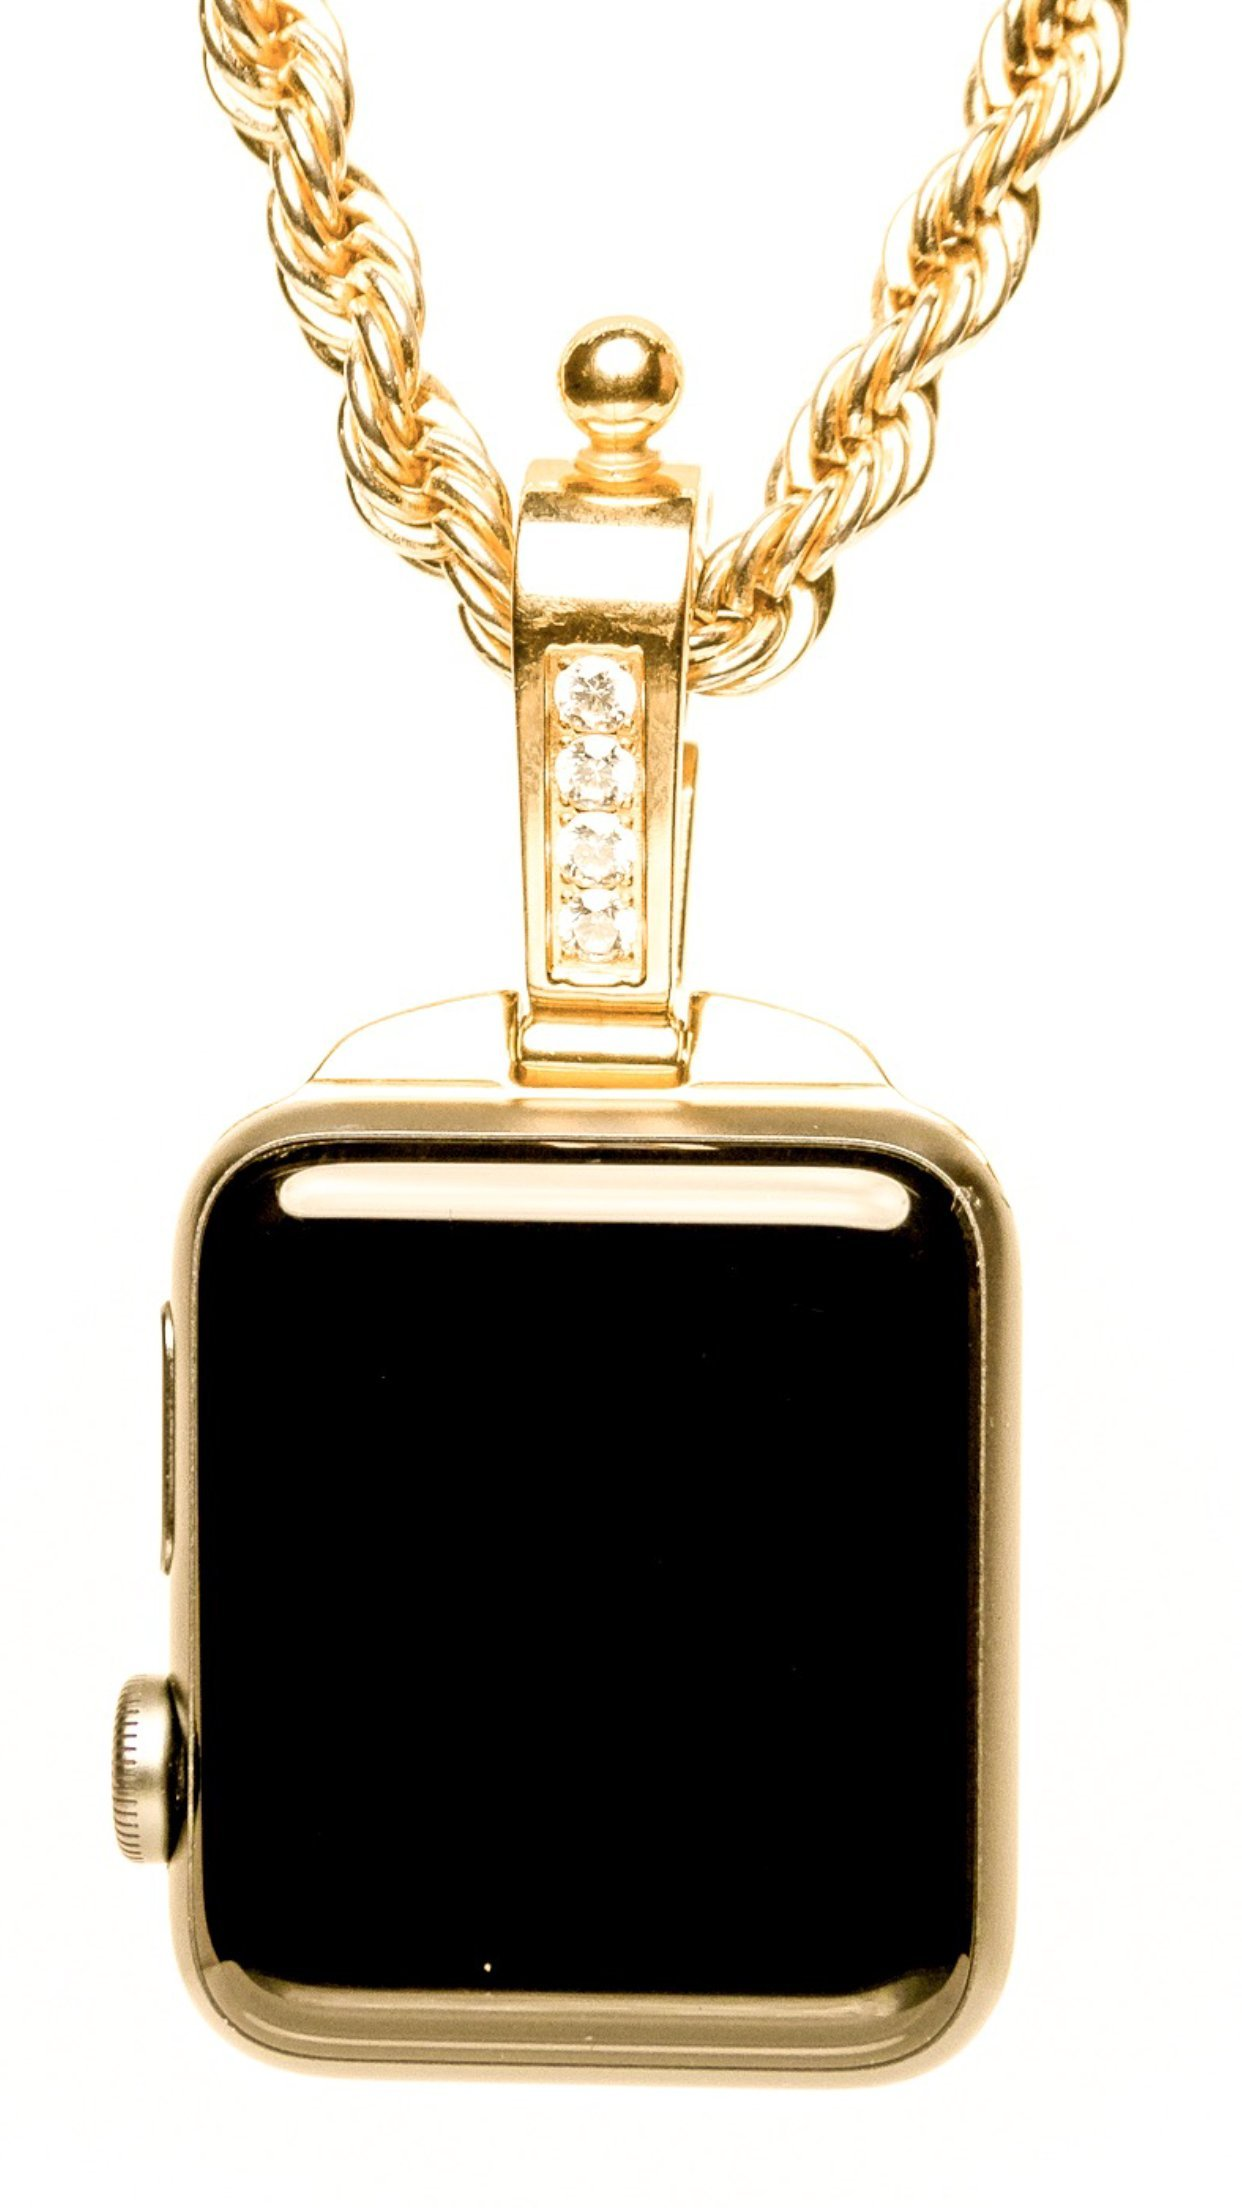 iClasp- Apple Watch Jewelry Necklace Pendant,Pocket Watch. (Gold Plated) Wear it with Original Style. by iClasp